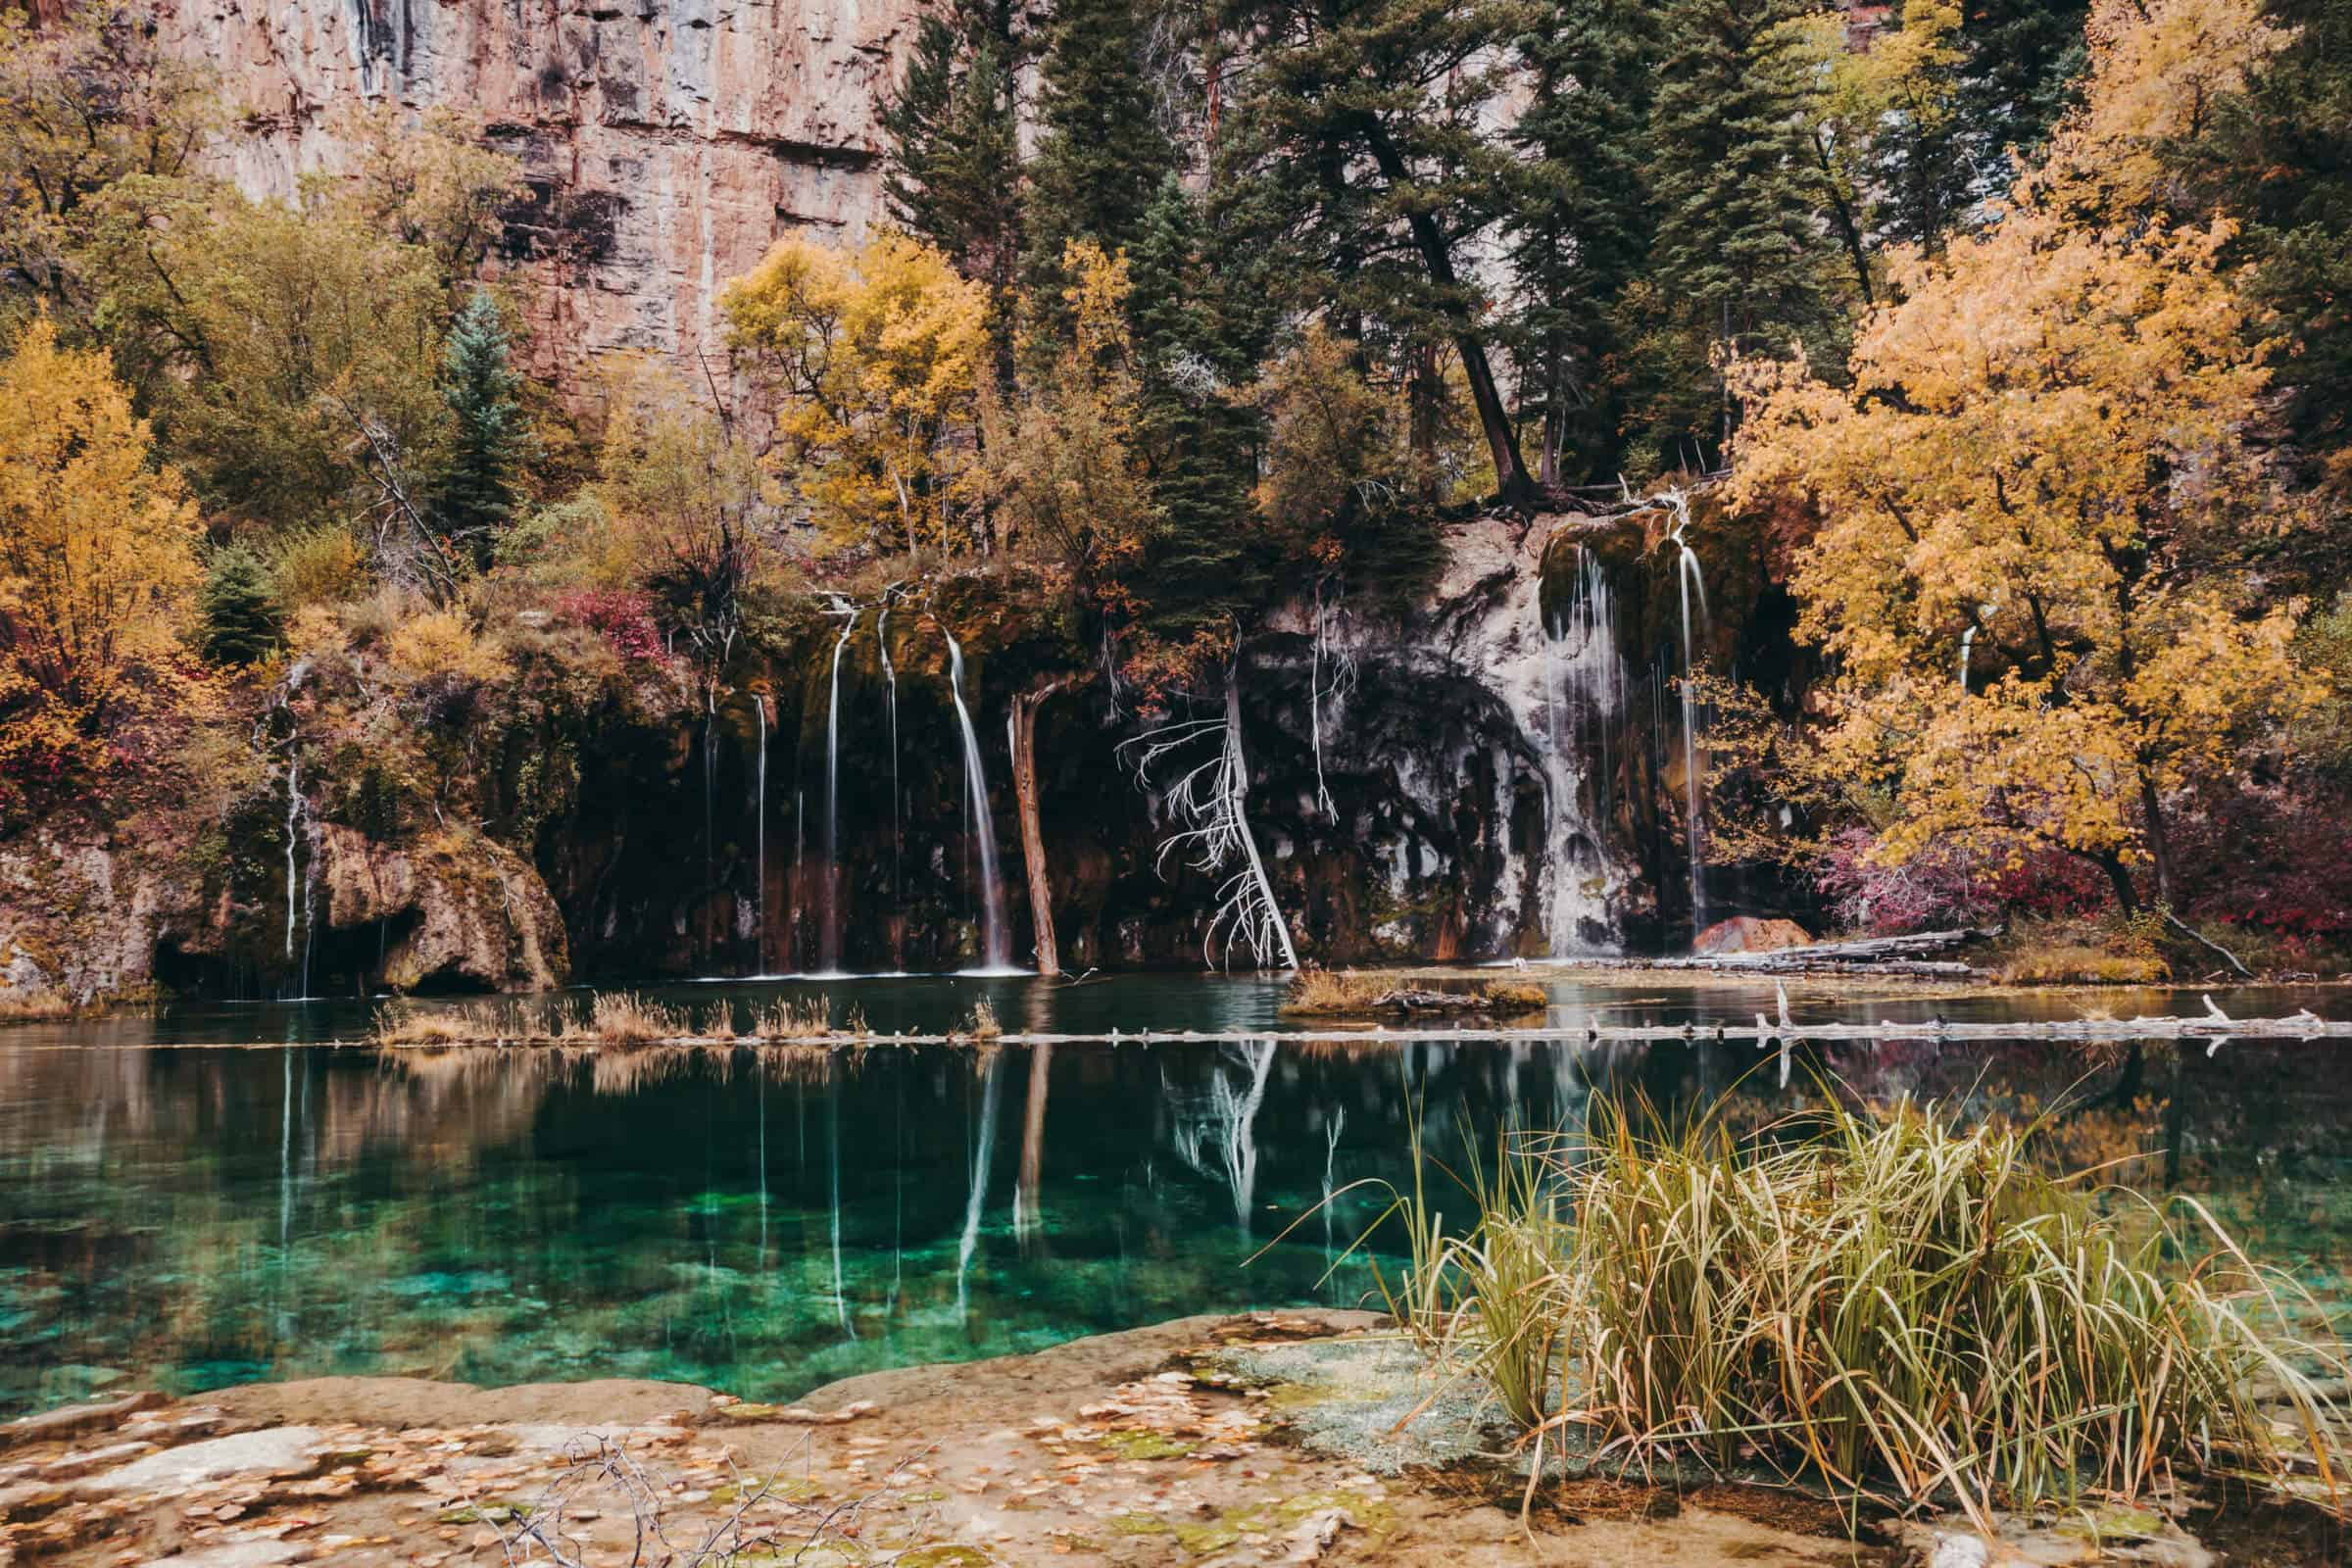 Hanging Lake, alpine lake and waterfalls, near Glenwood Springs, Colorado, during autumn. Lake reflections and fall foliage.